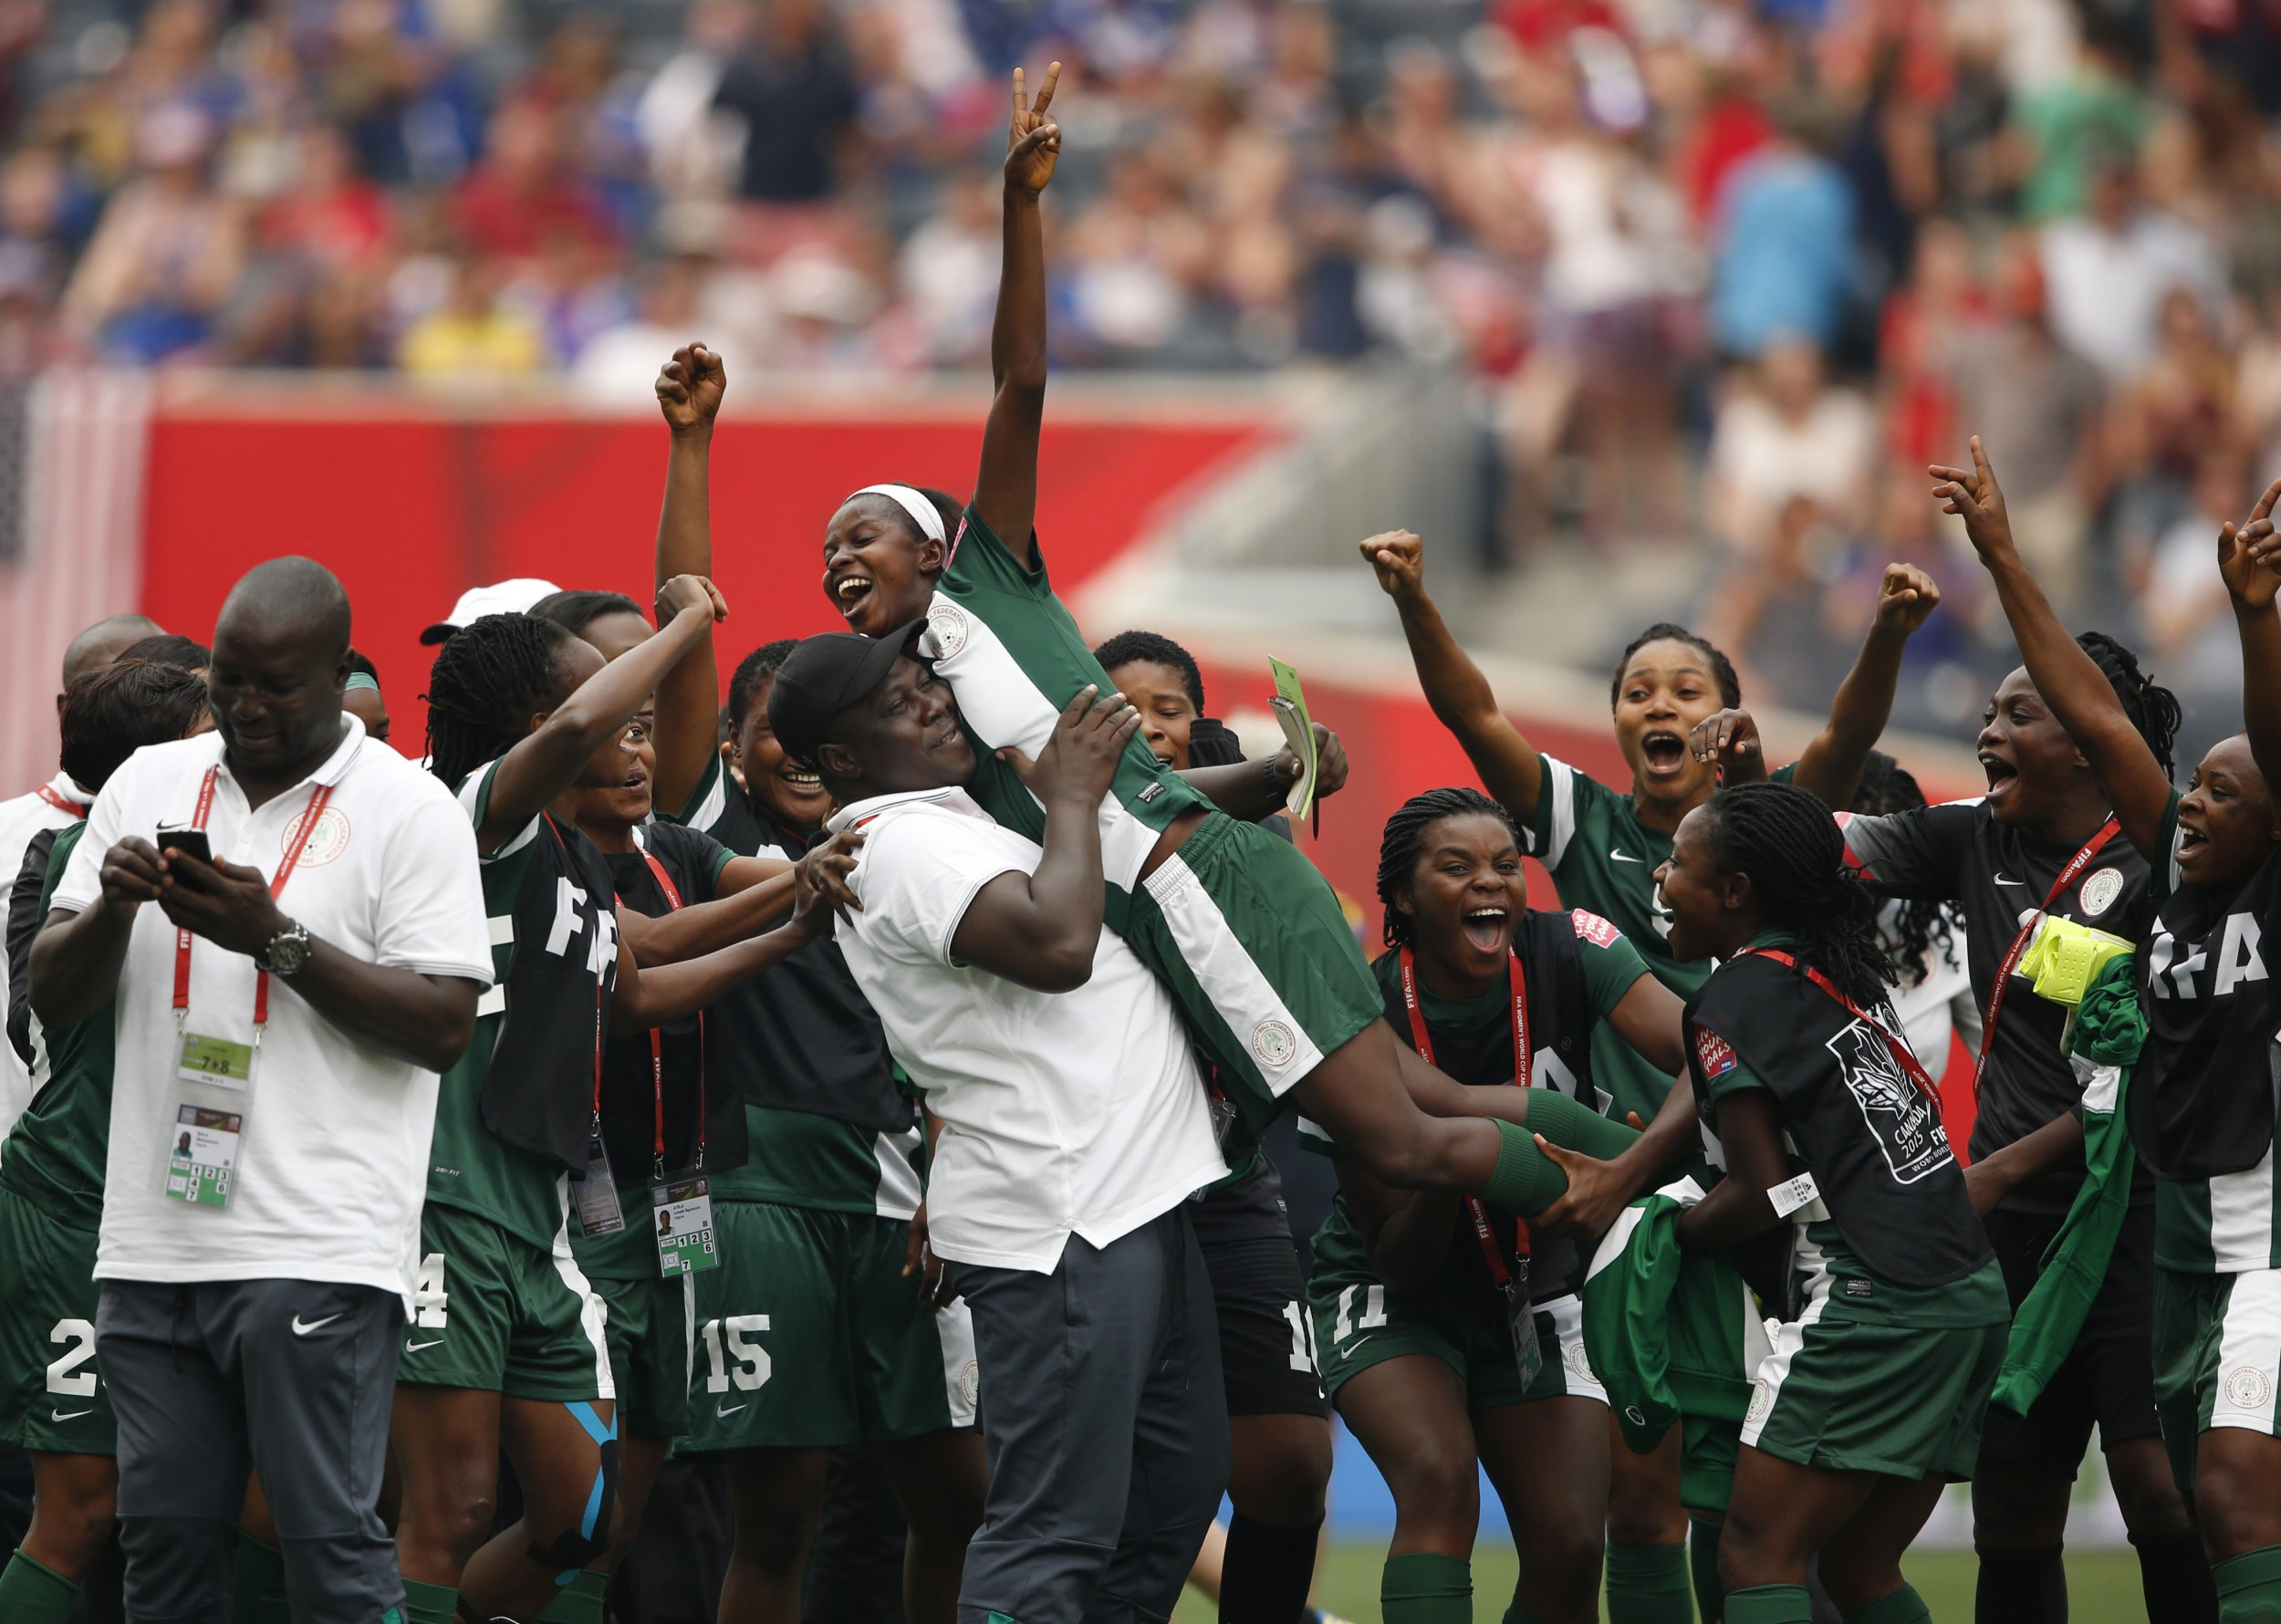 Nigeria women's football team.